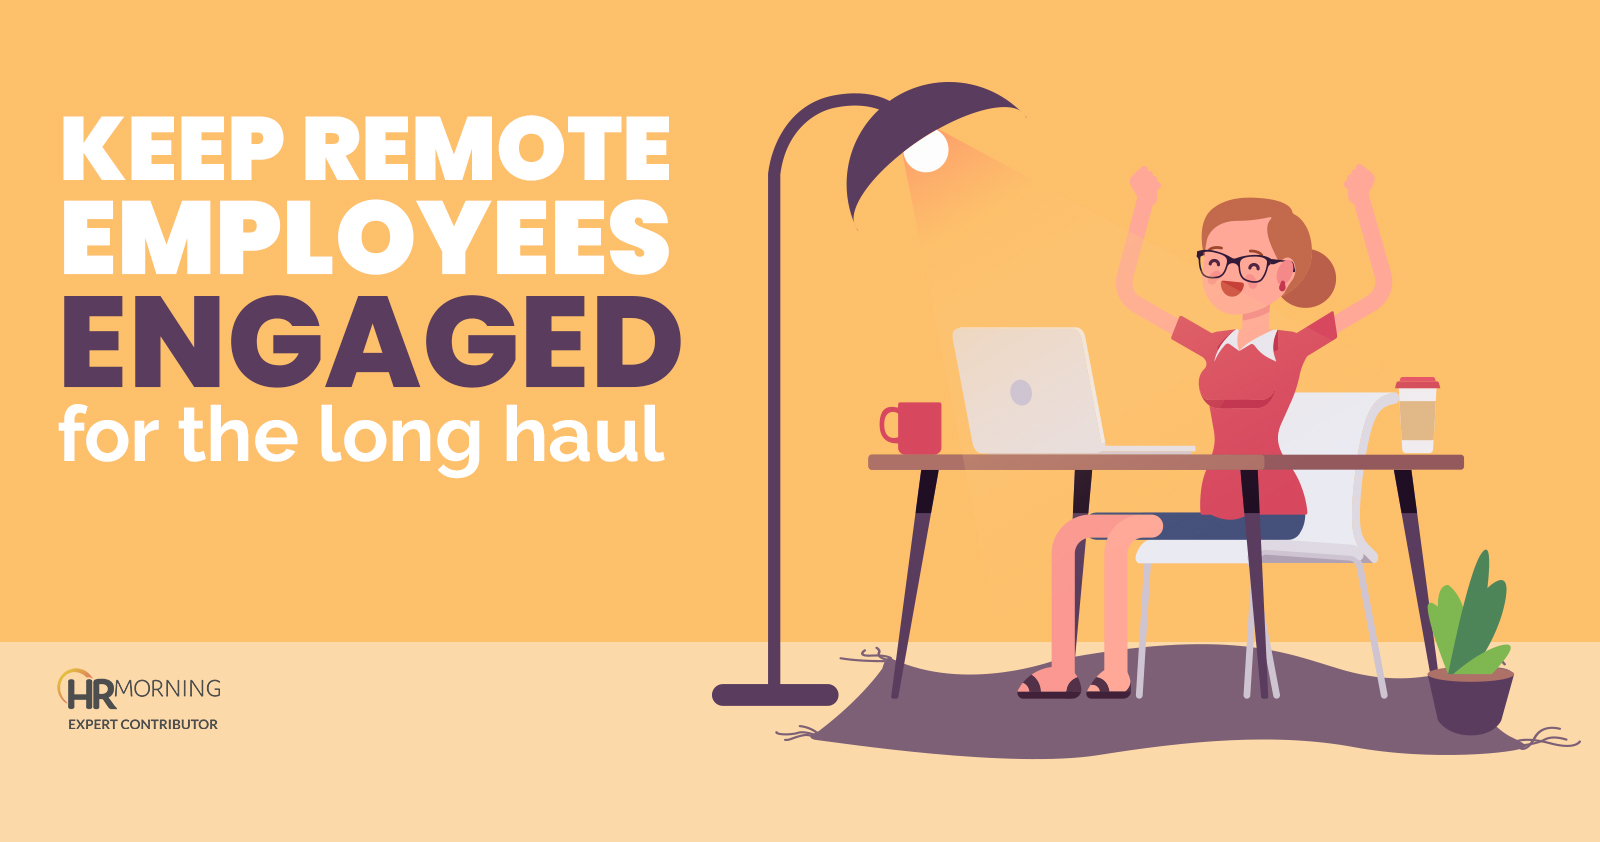 keep remote employees engaged for the long haul